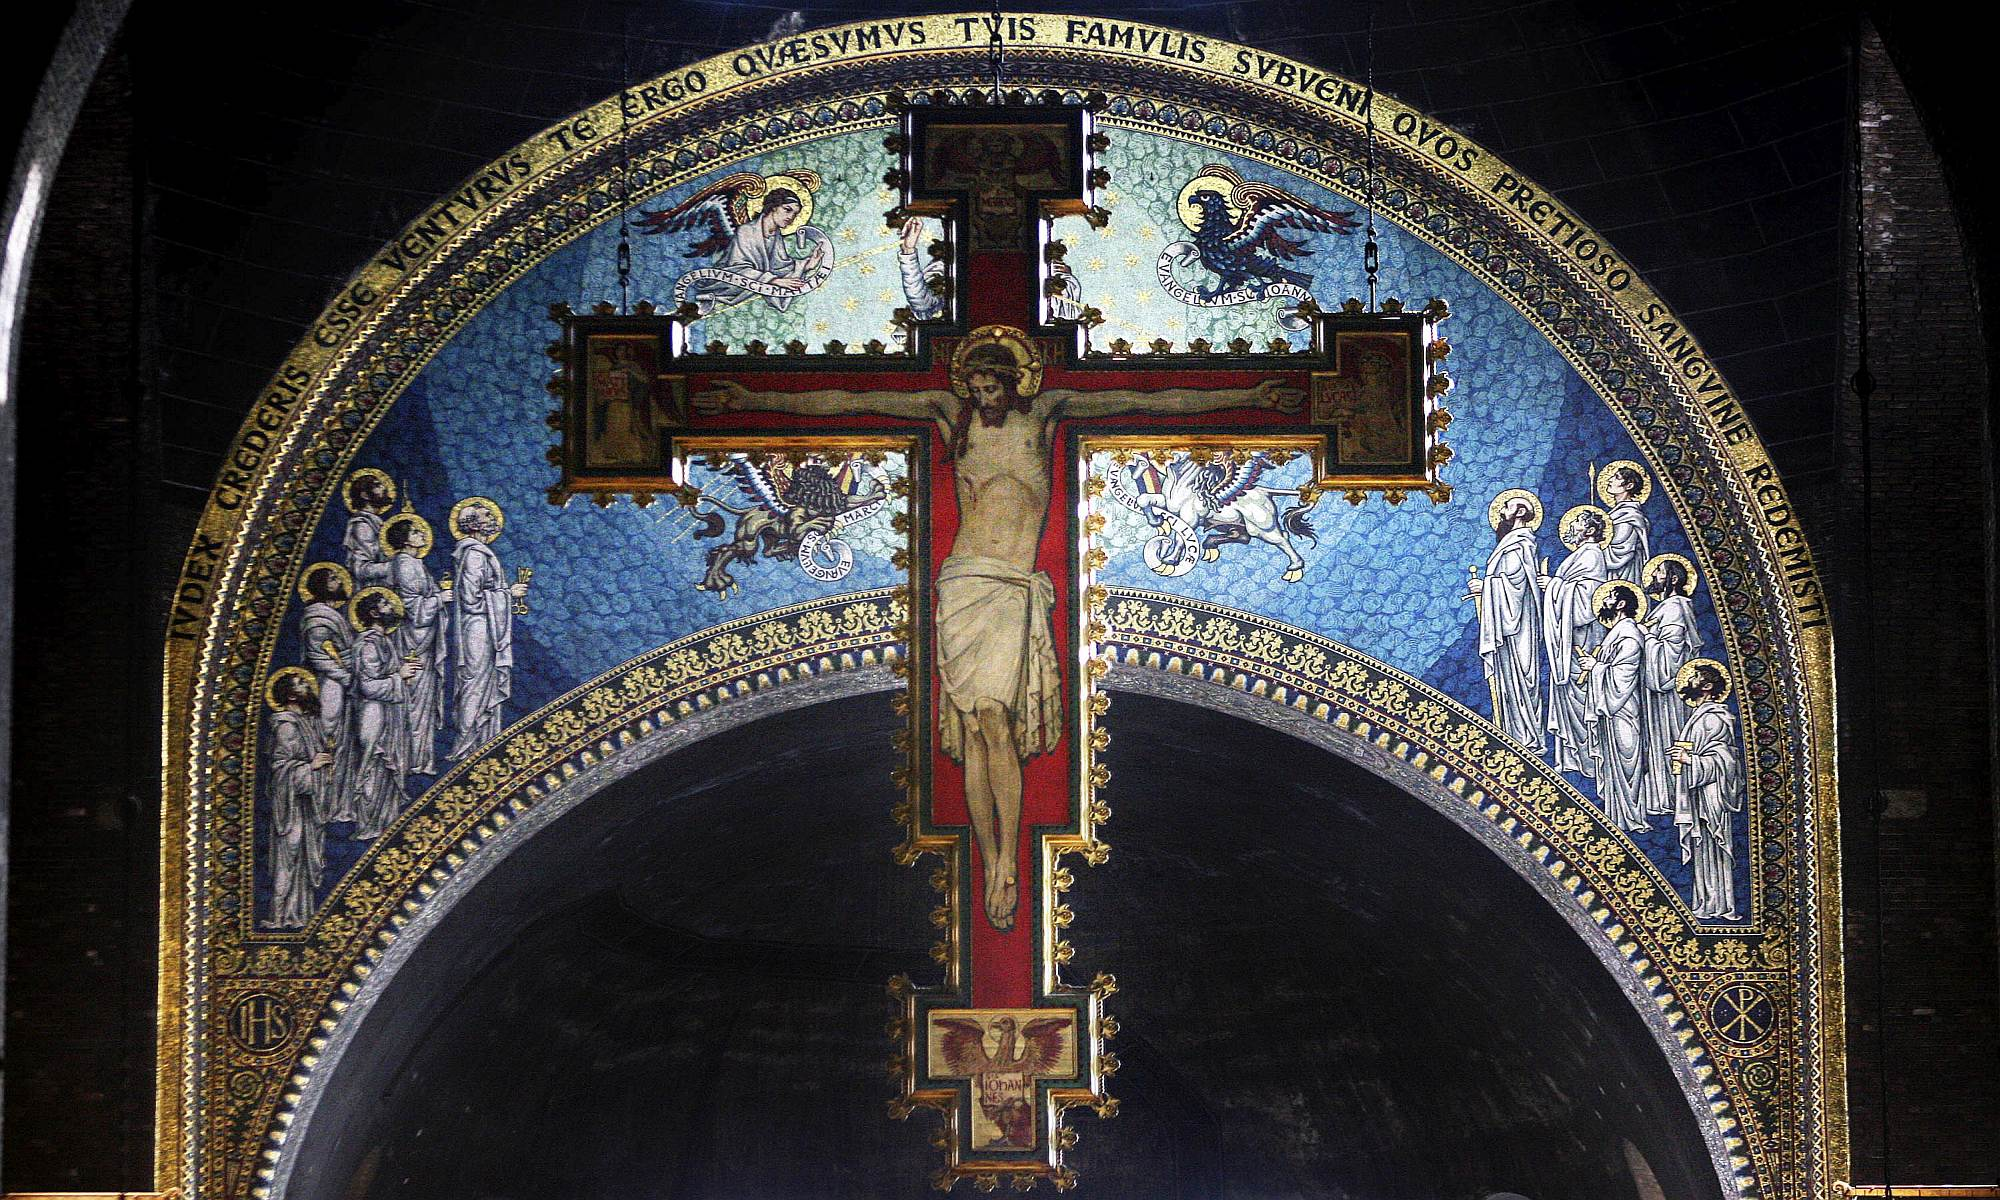 The subversive legacy of Christianity